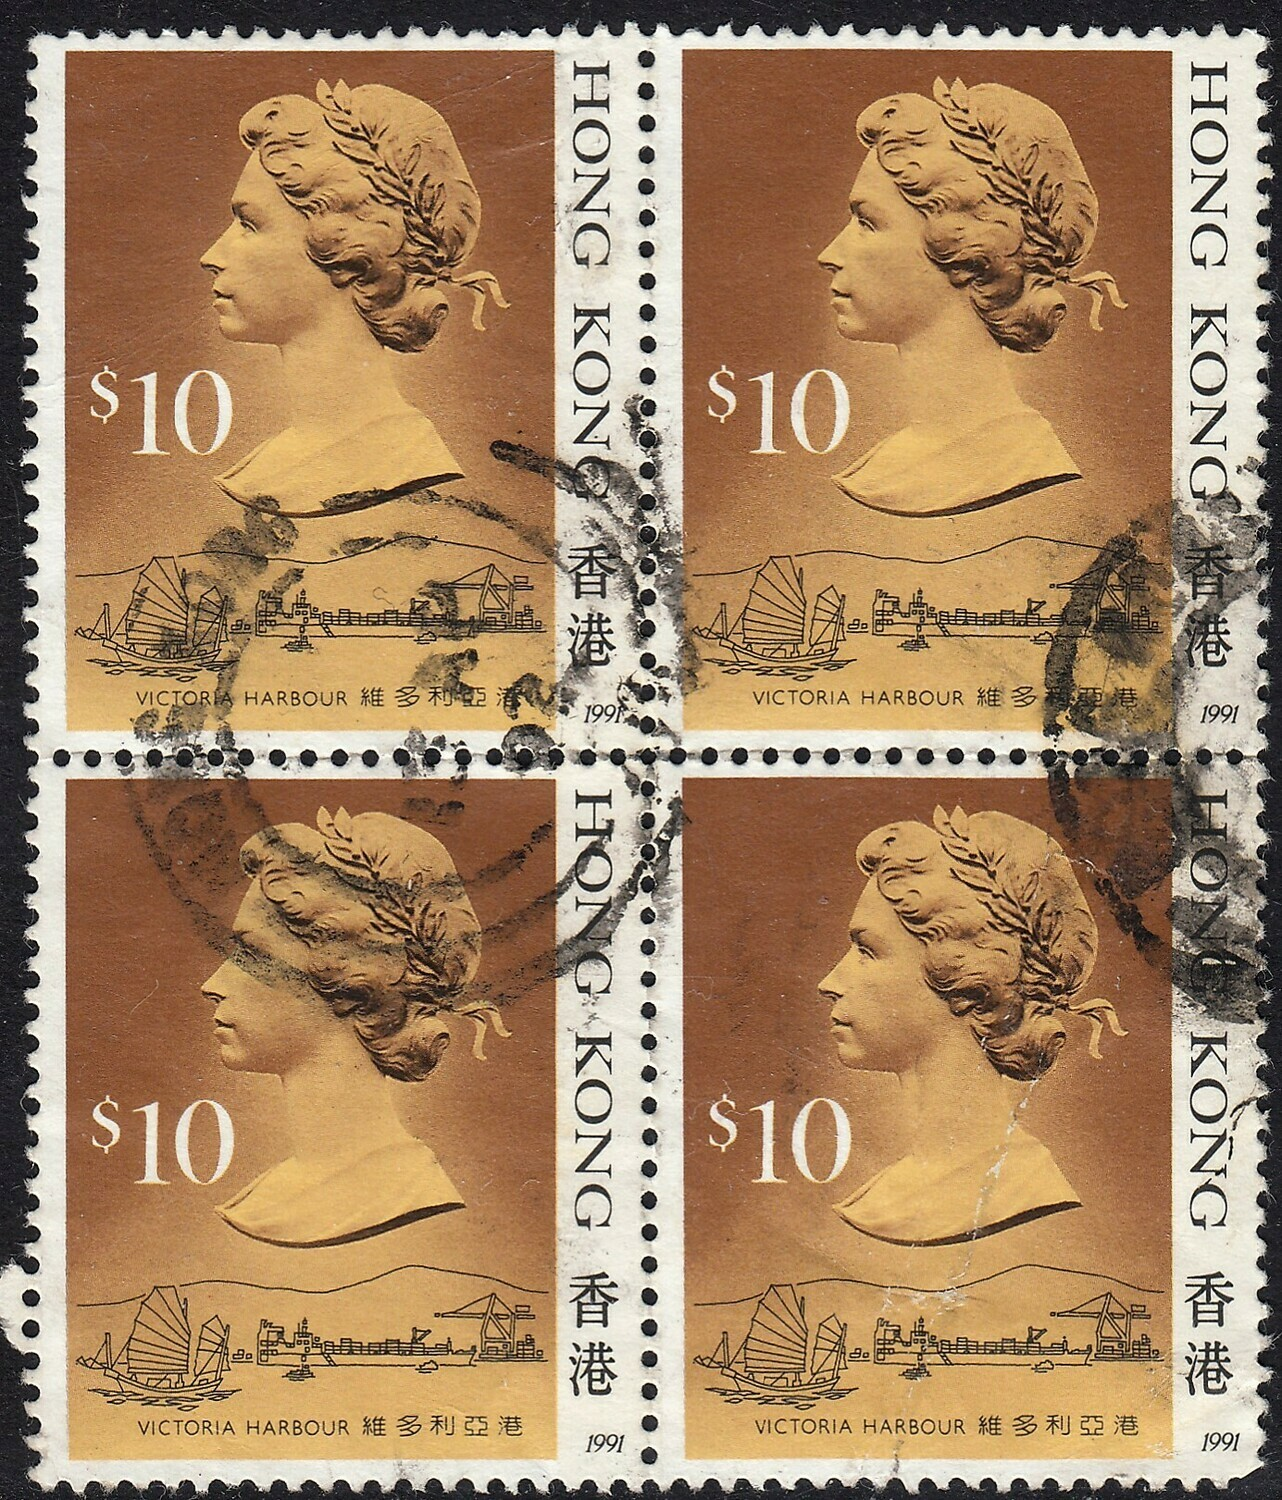 Hong Kong 1987 QEII $10 Victoria Harbour Block of 4 Used